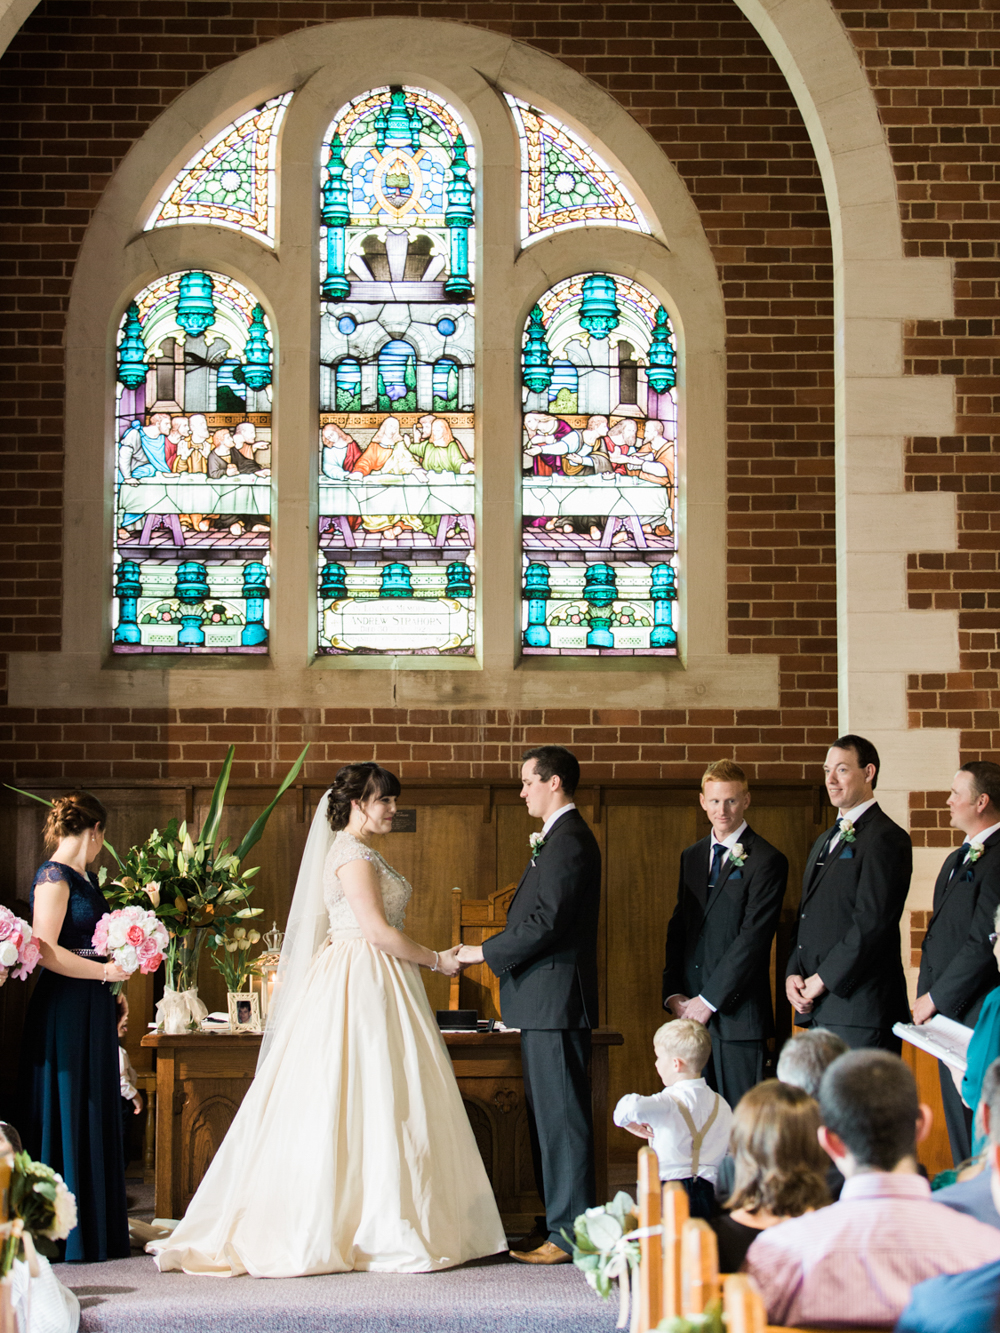 00032- Dubbo NSW Wedding Photographer Sheri McMahon.jpg